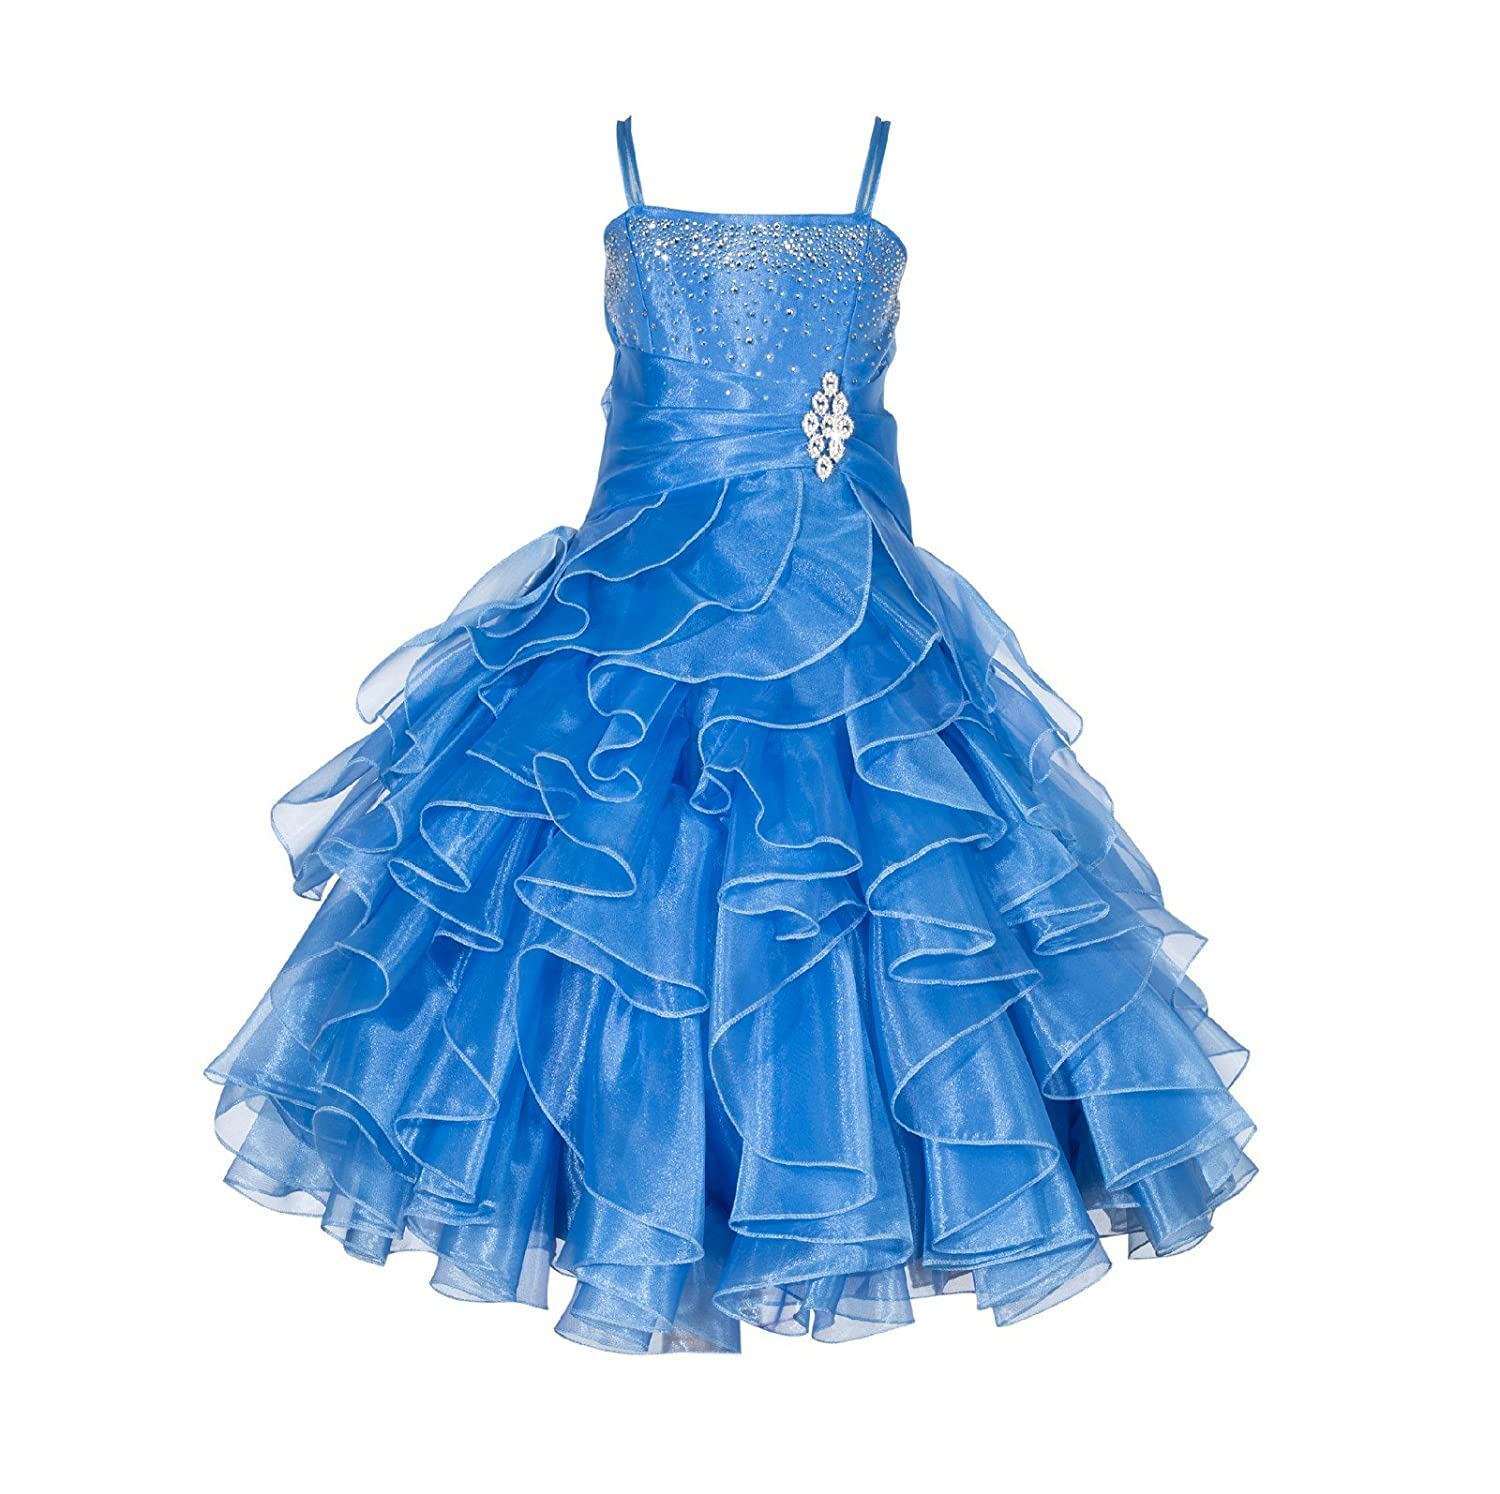 ekidsbridal Rhinestones Organza Layers Junior Flower Girl Dresses Christening Dress 164S